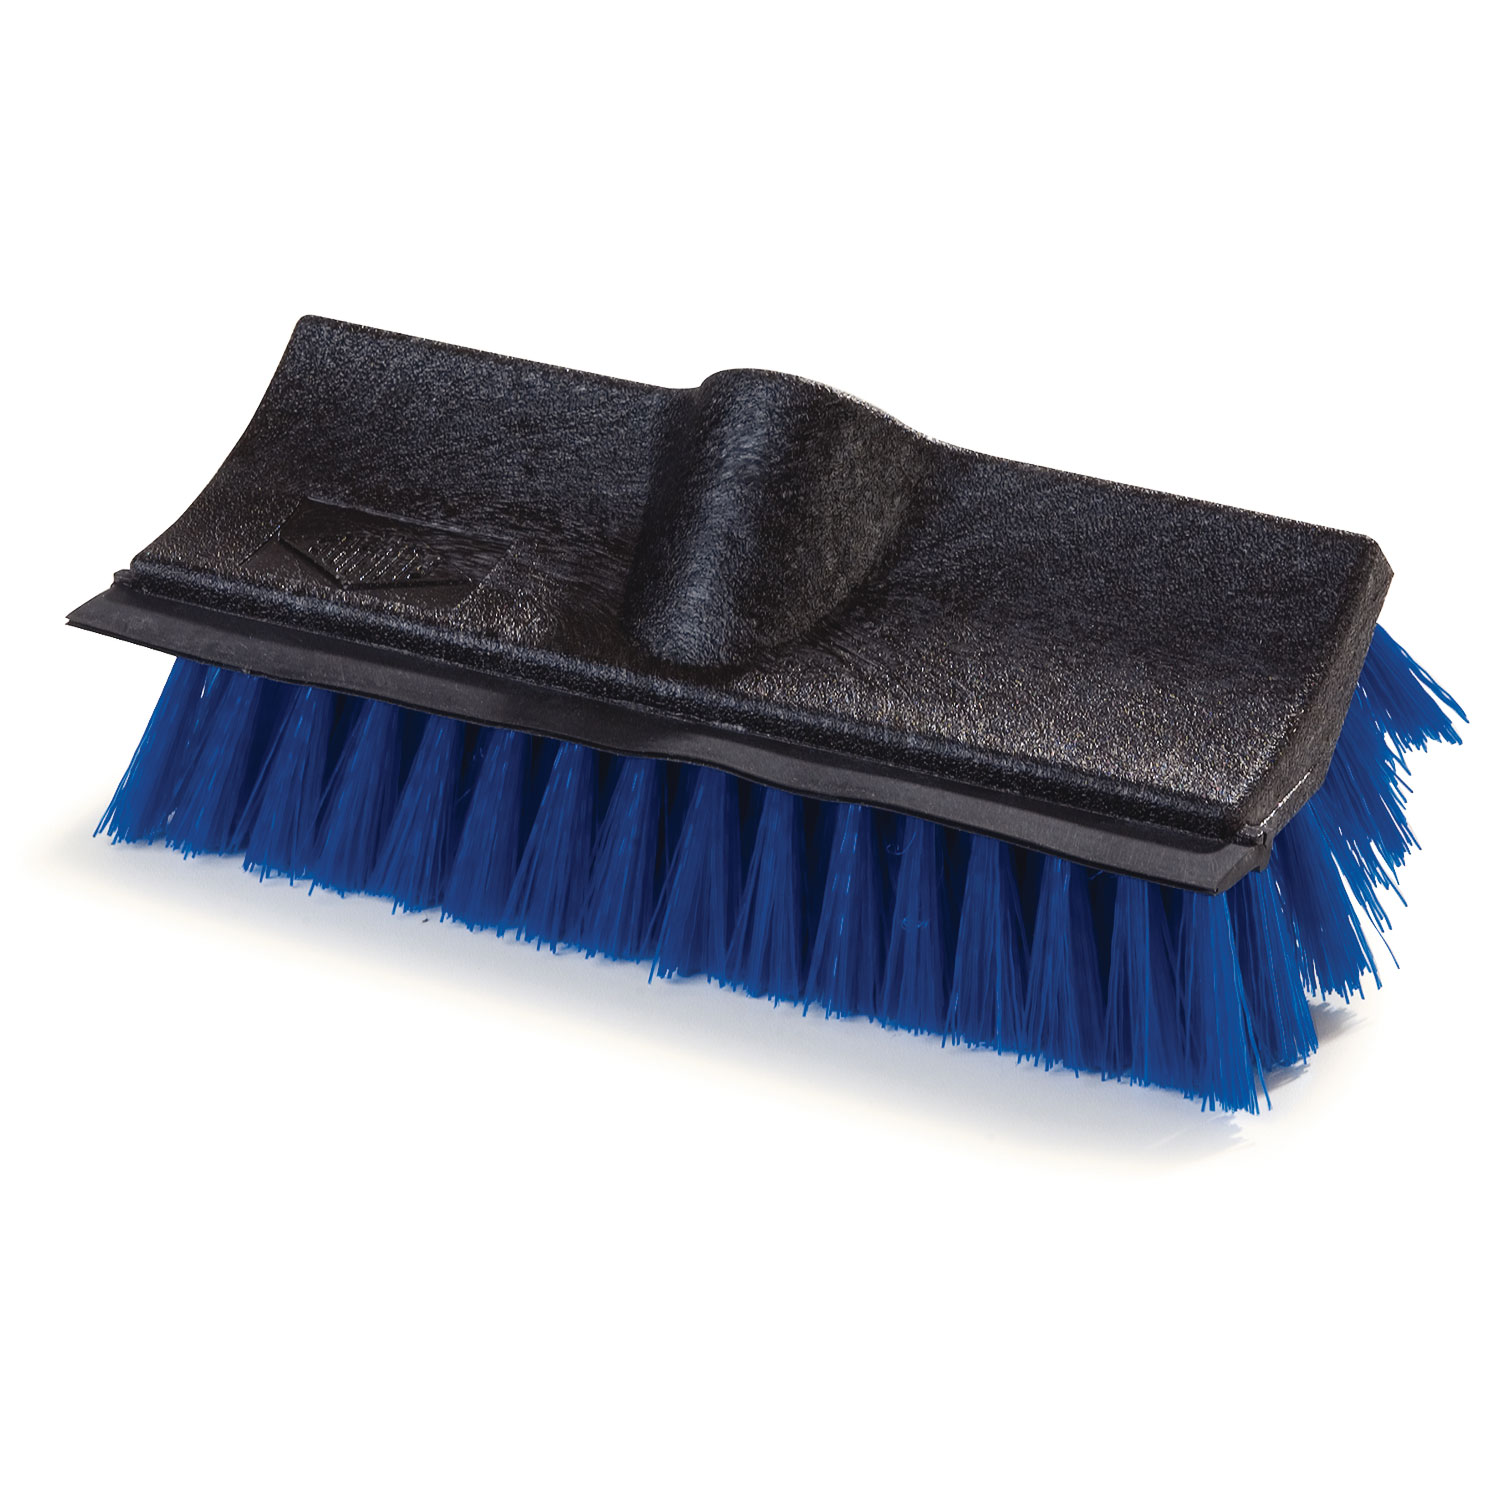 "Carlisle 3619014 10"" Dual Surface Floor Scrub Brush Head - Squeegee, Poly/Plastic, Blue"